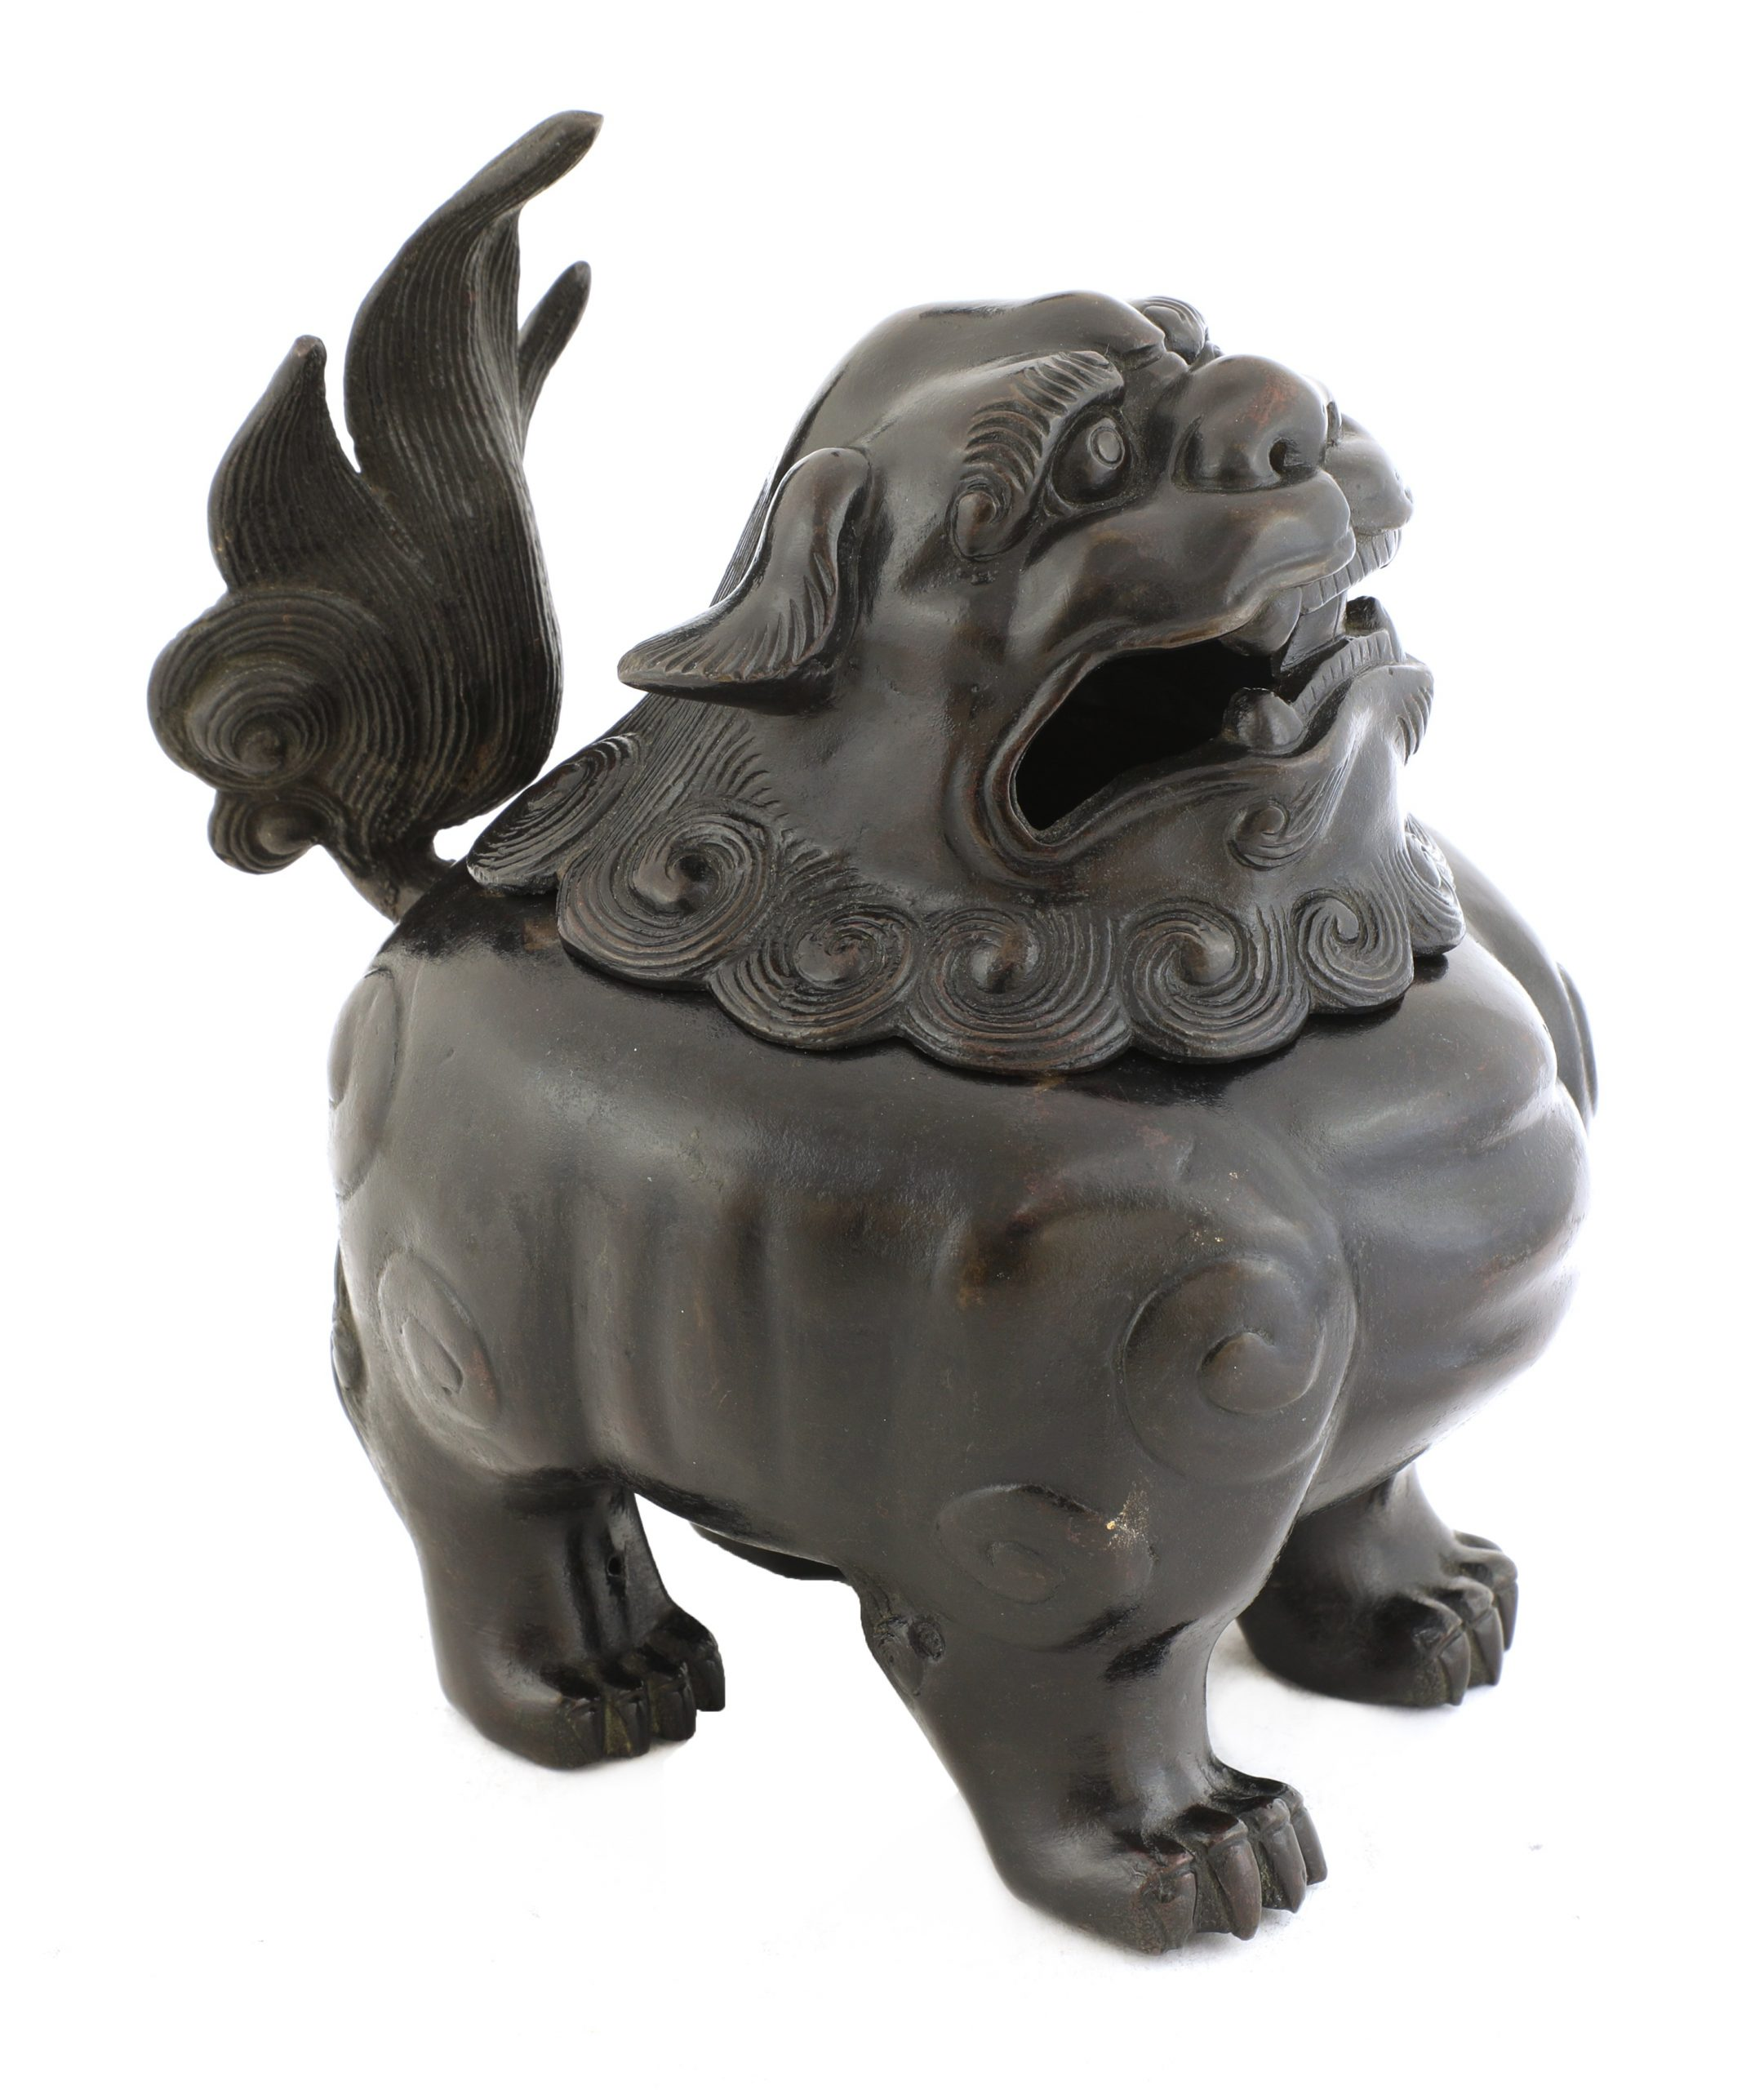 In the form of a standing Buddhist lion, the cover as the head, looking forward with open eyes, bushy eyebrows and open mouth, the body with an upright bushy tail, the feet well defined, 21.5cm high, 3100g (2) 十七世纪 铜铸佛狮香炉